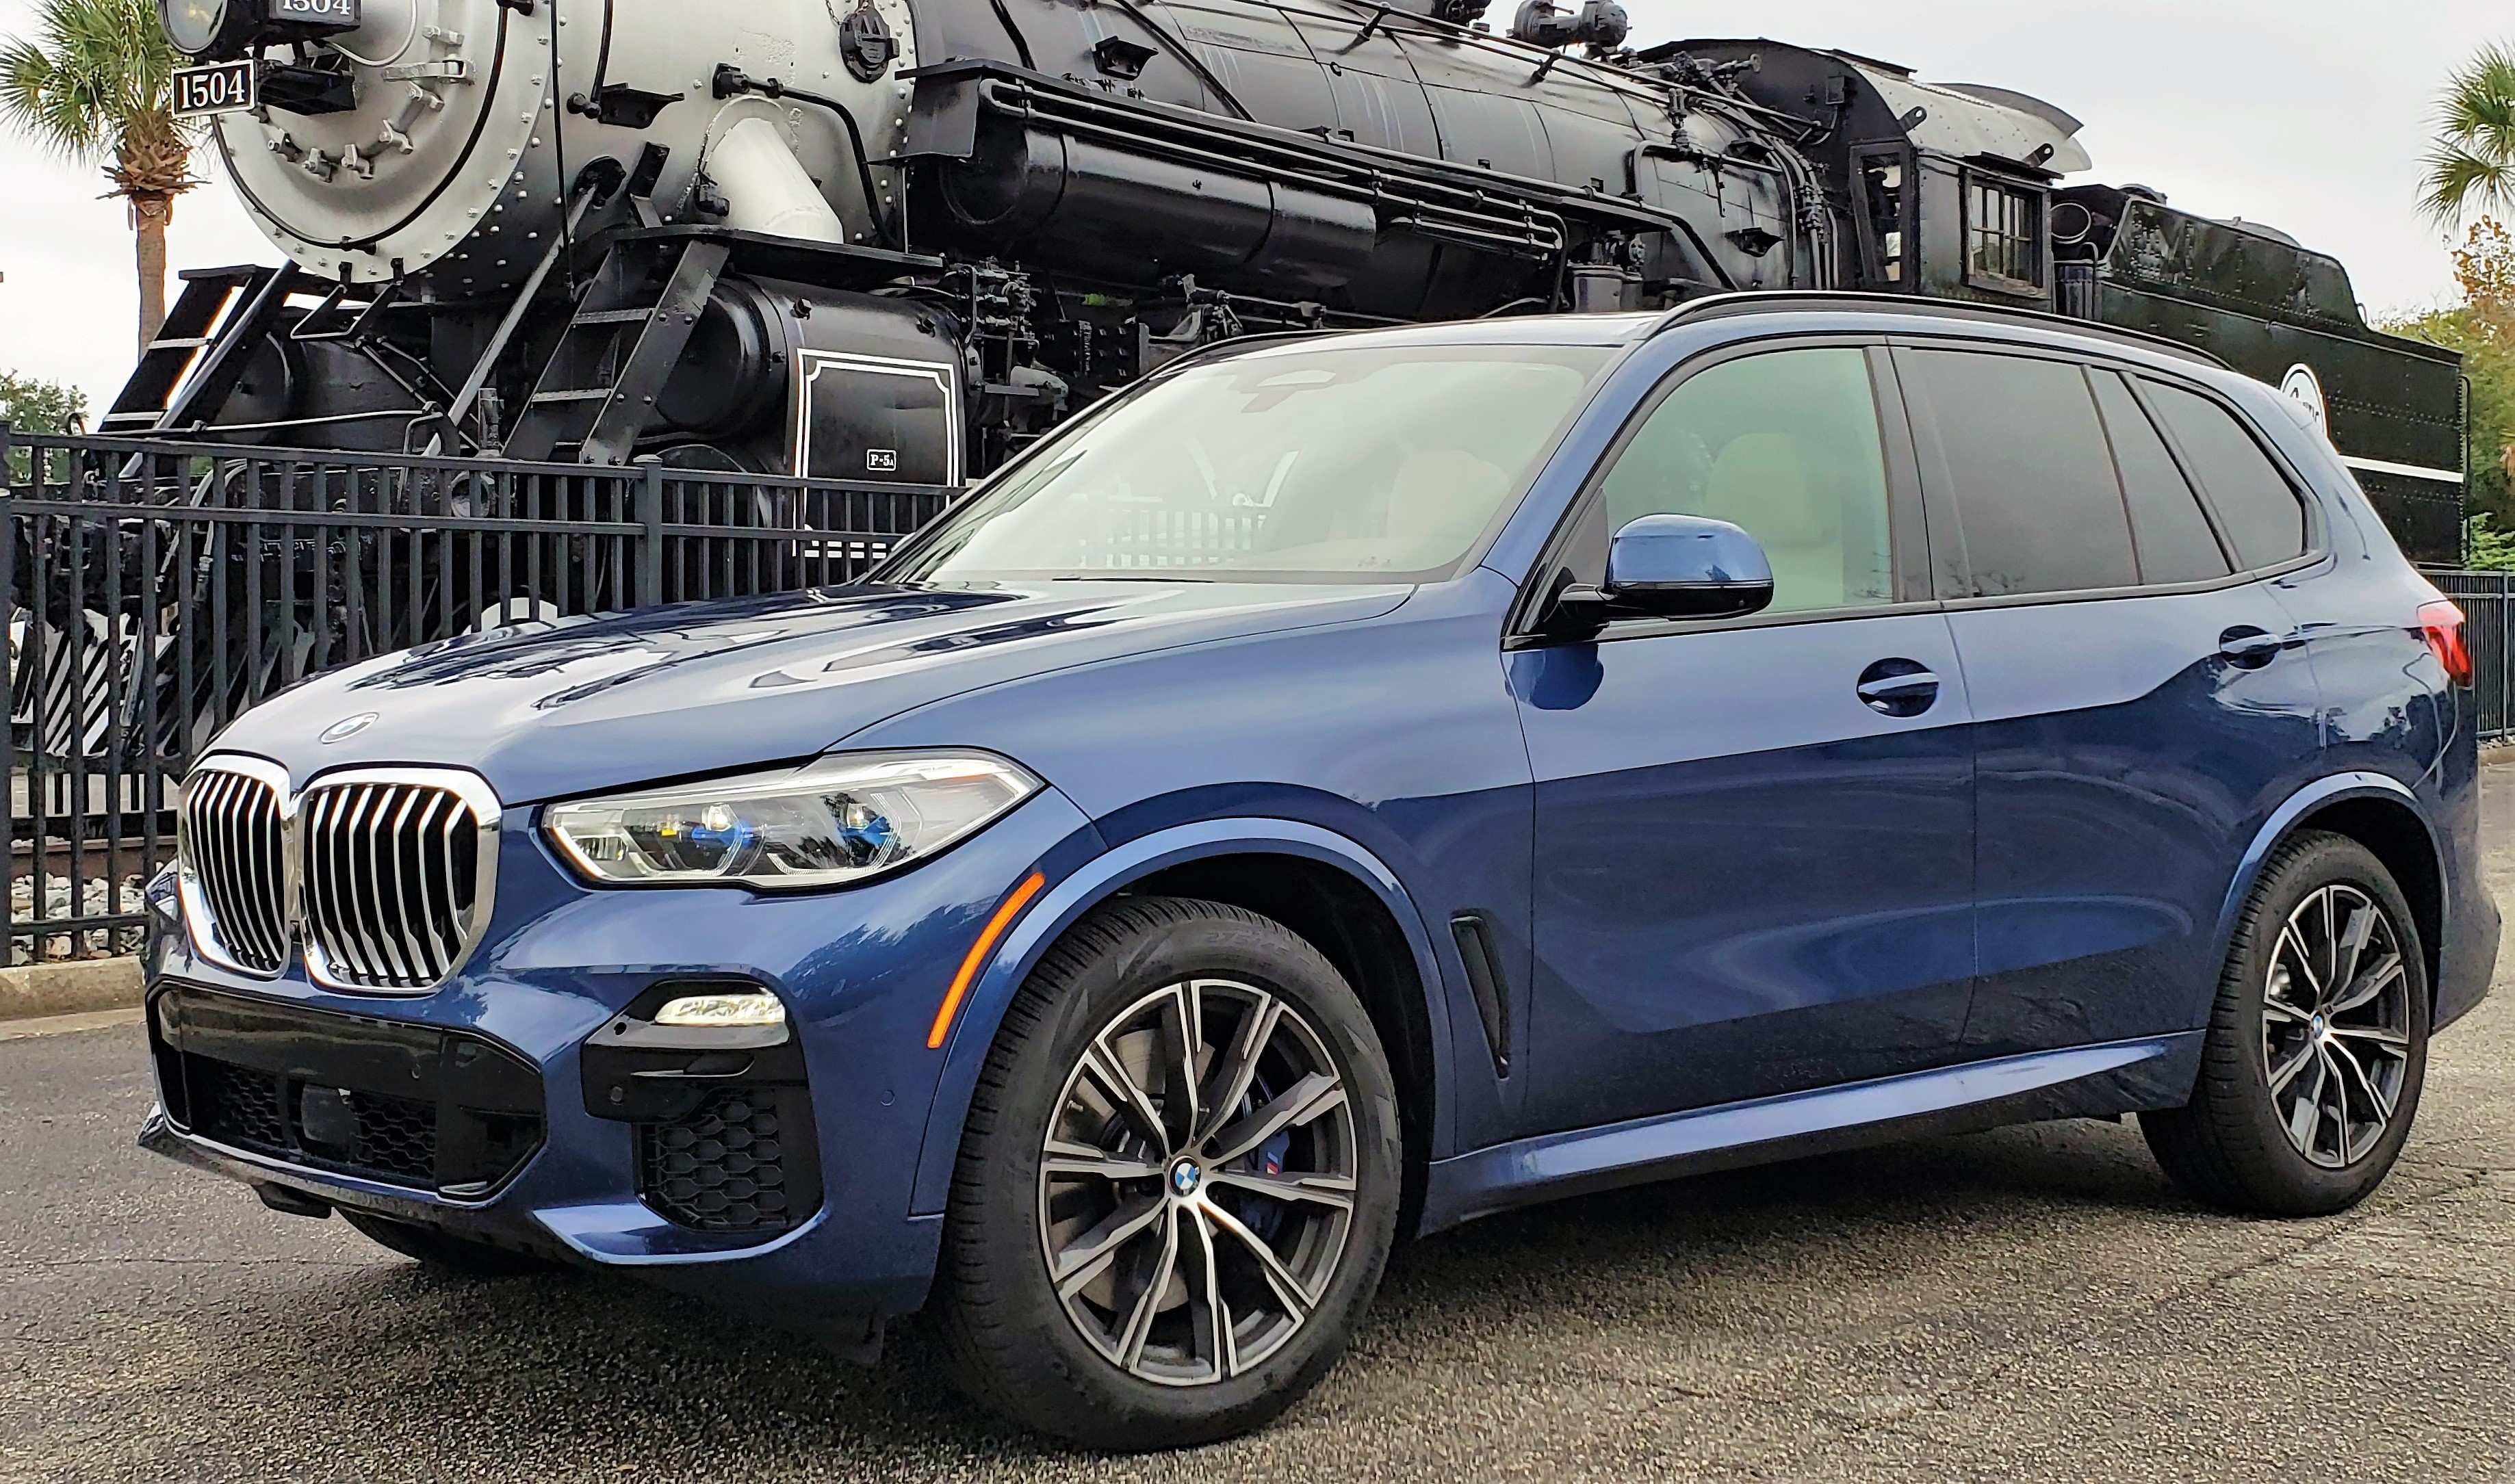 48 The Best 2019 BMW X5 Price Design And Review